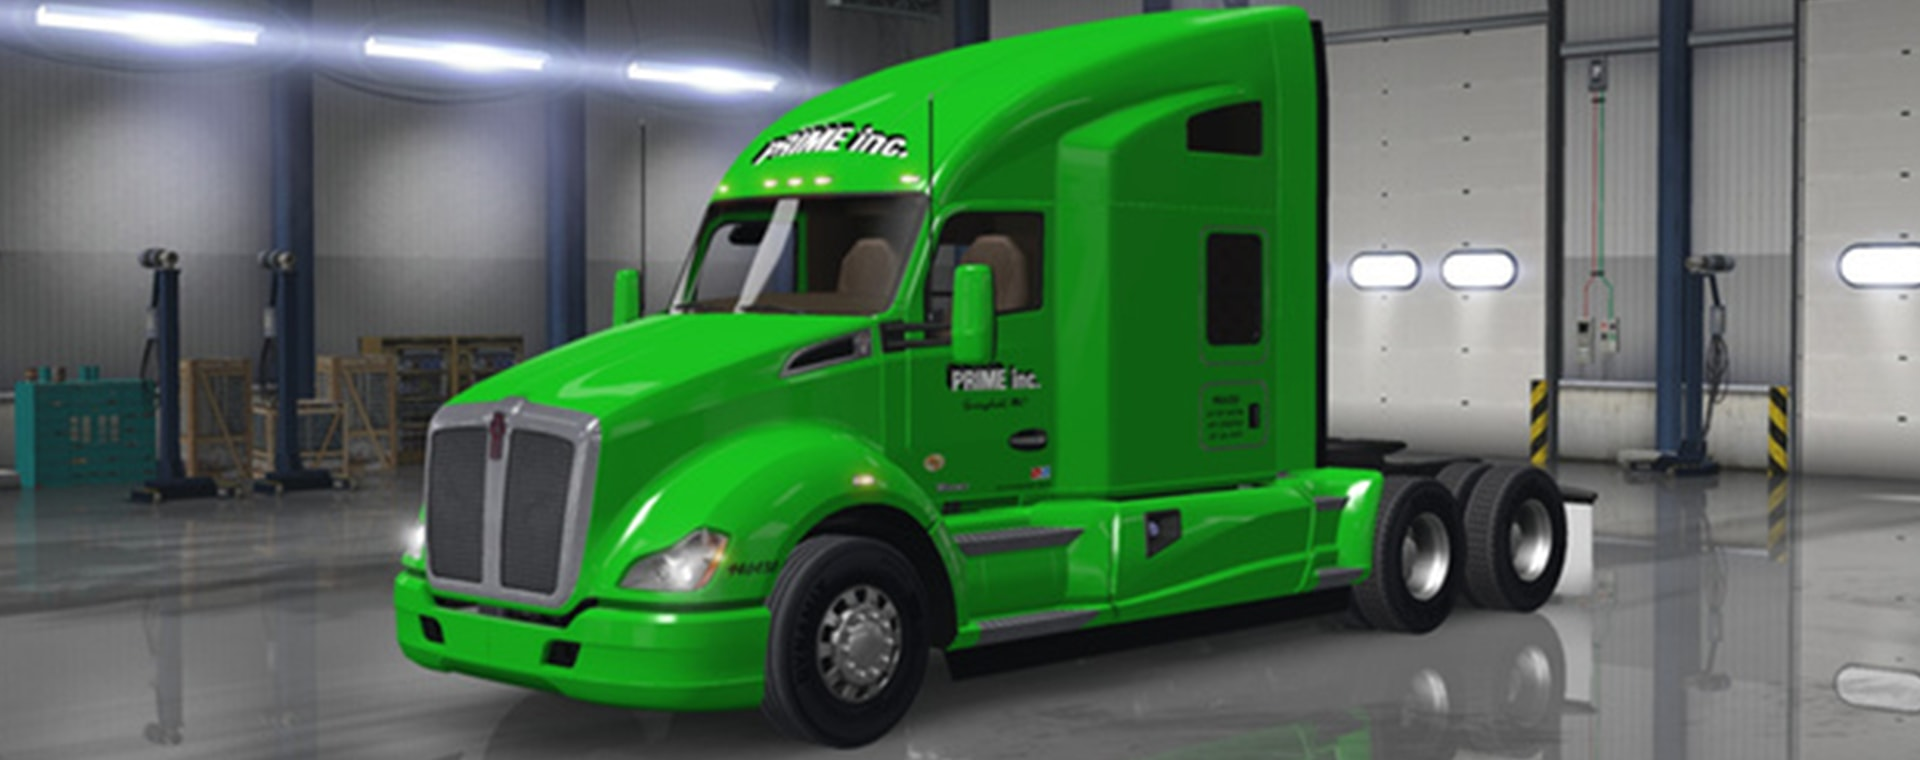 Truck fleet Workshops